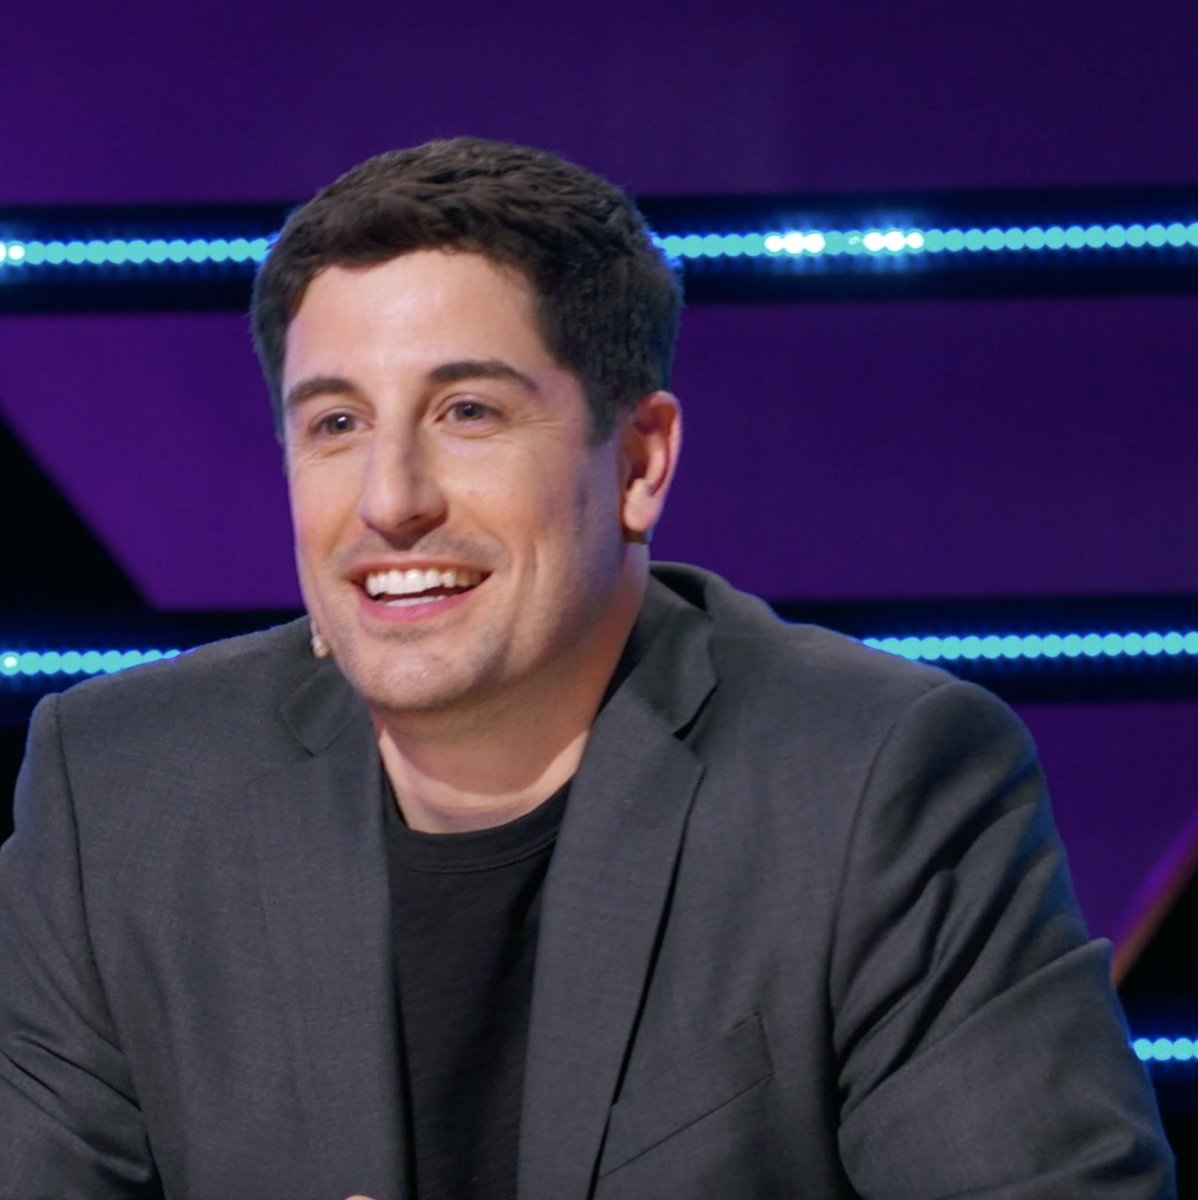 .@JasonBiggs took a break from being #Outmatched to join #TheMaskedSinger panel! 👏